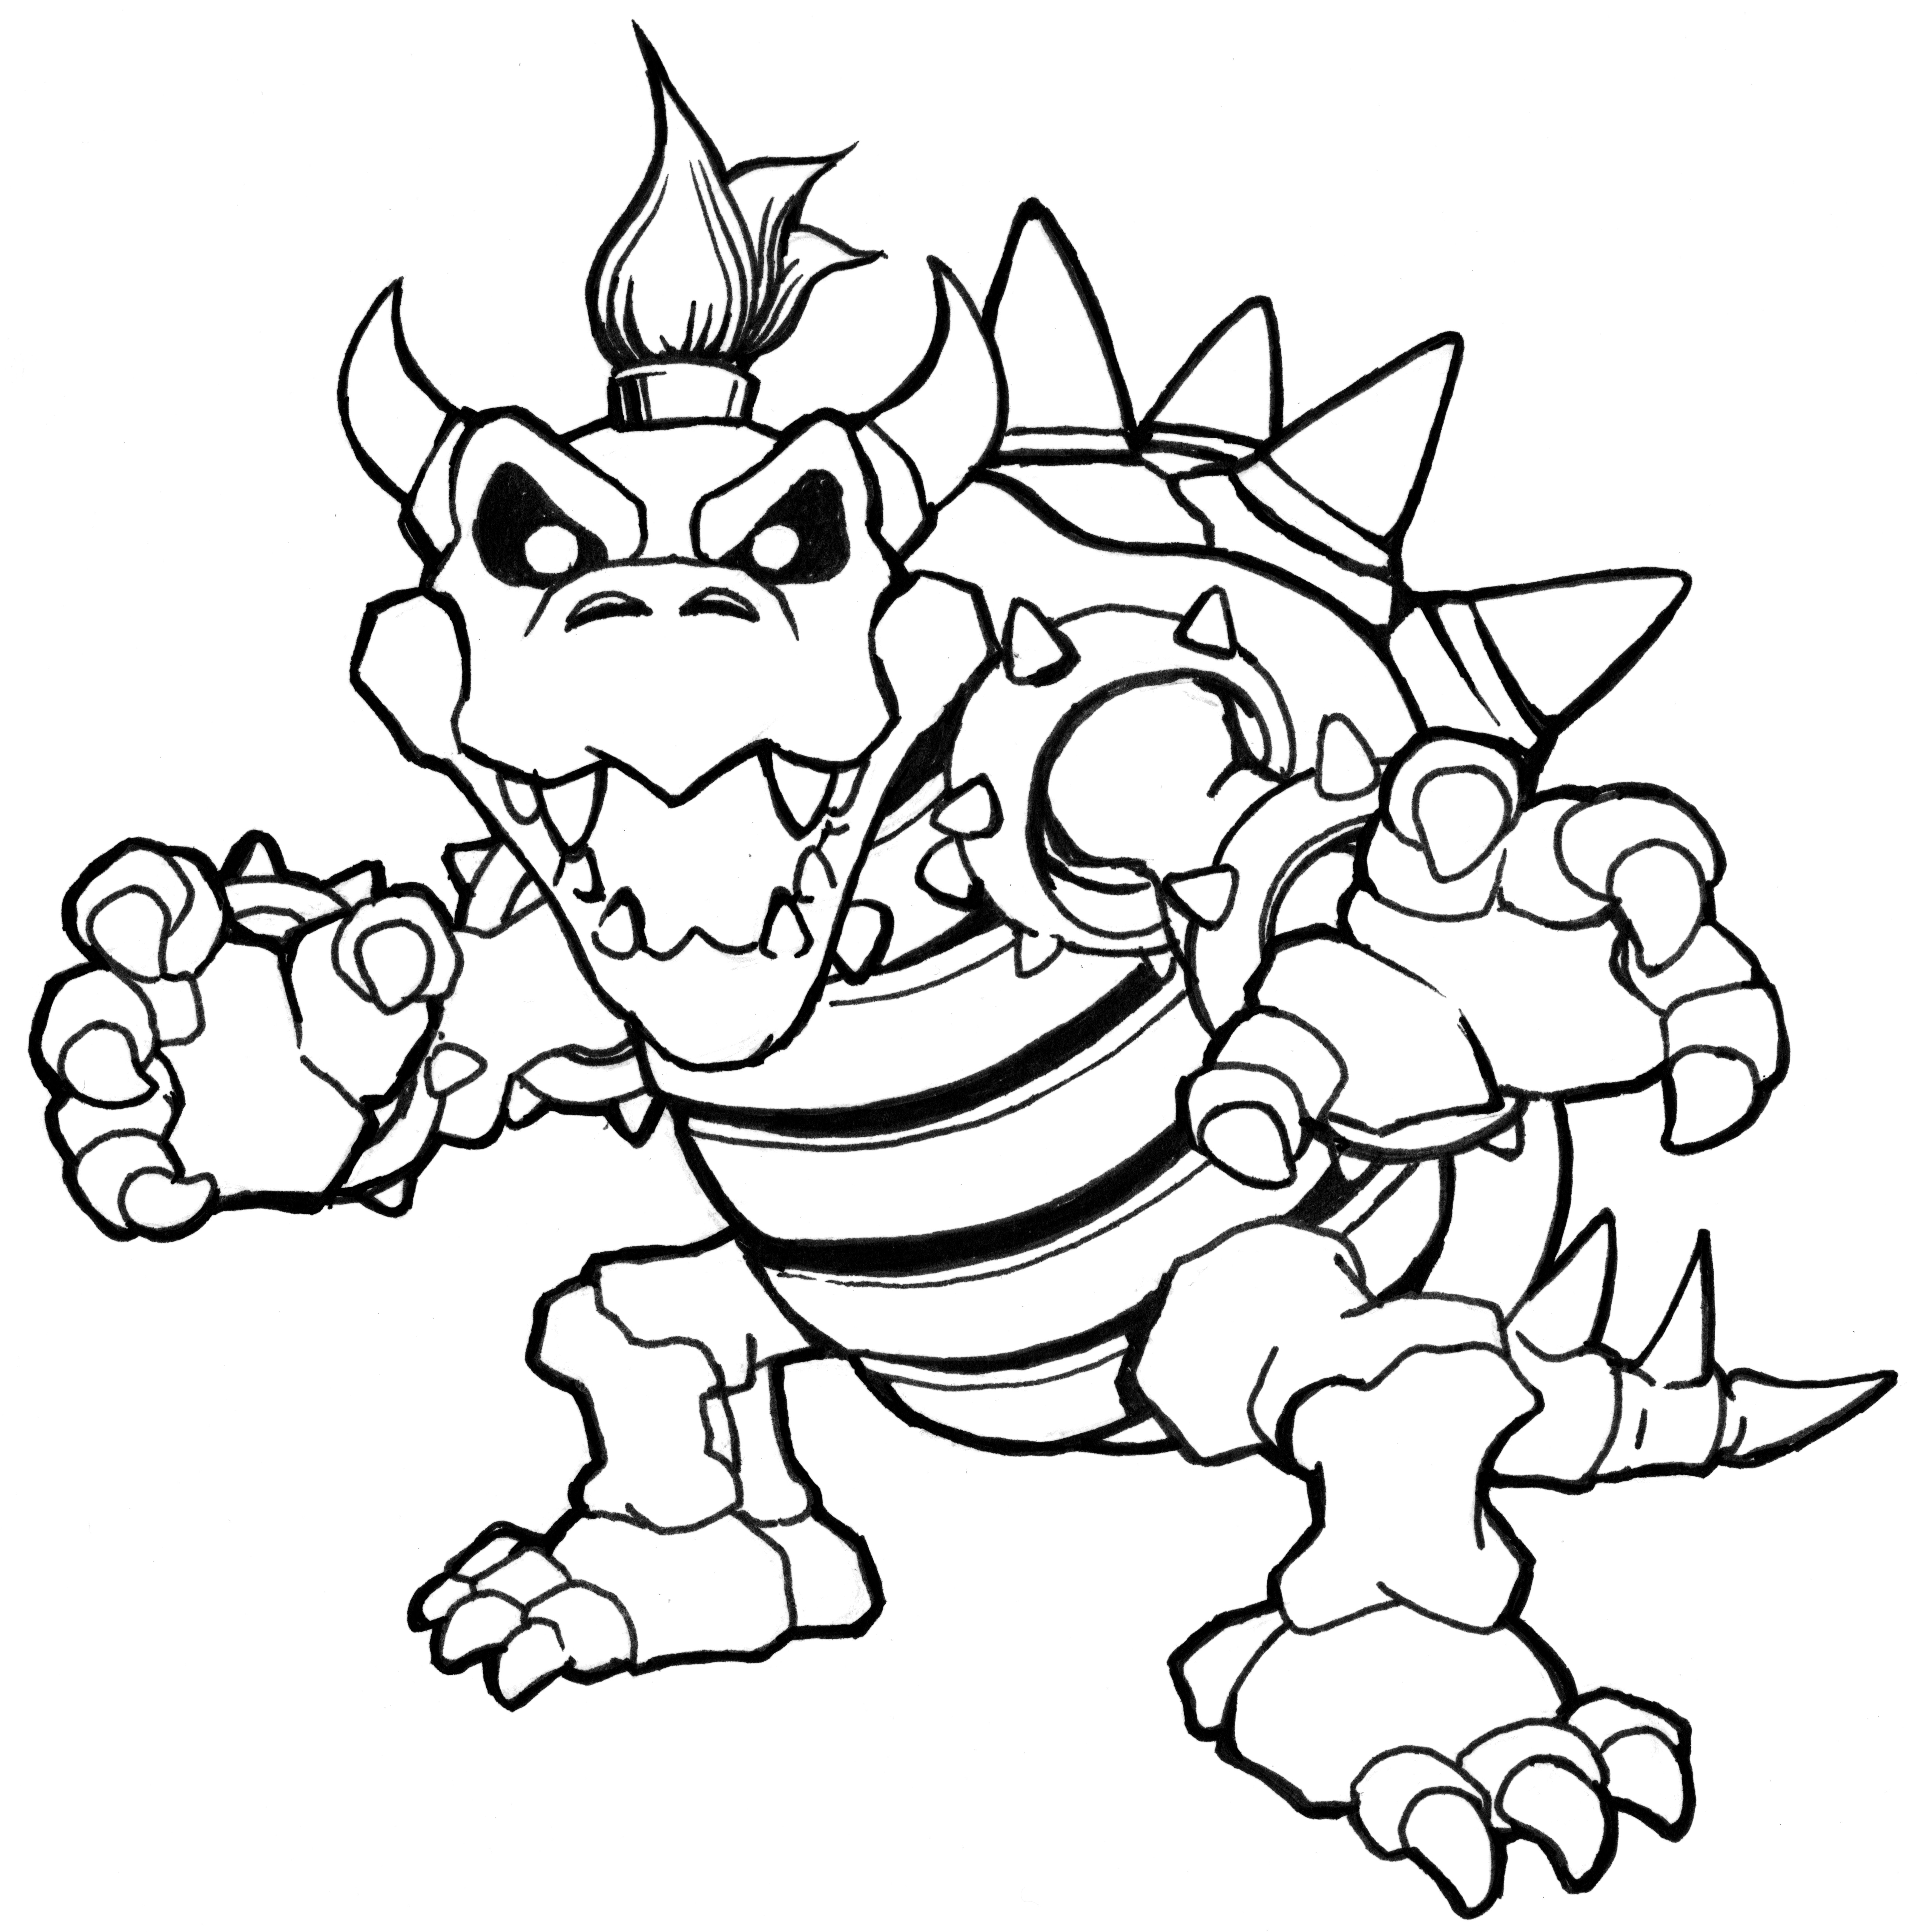 bowser colouring pages bowser coloring page at getdrawings free download bowser colouring pages